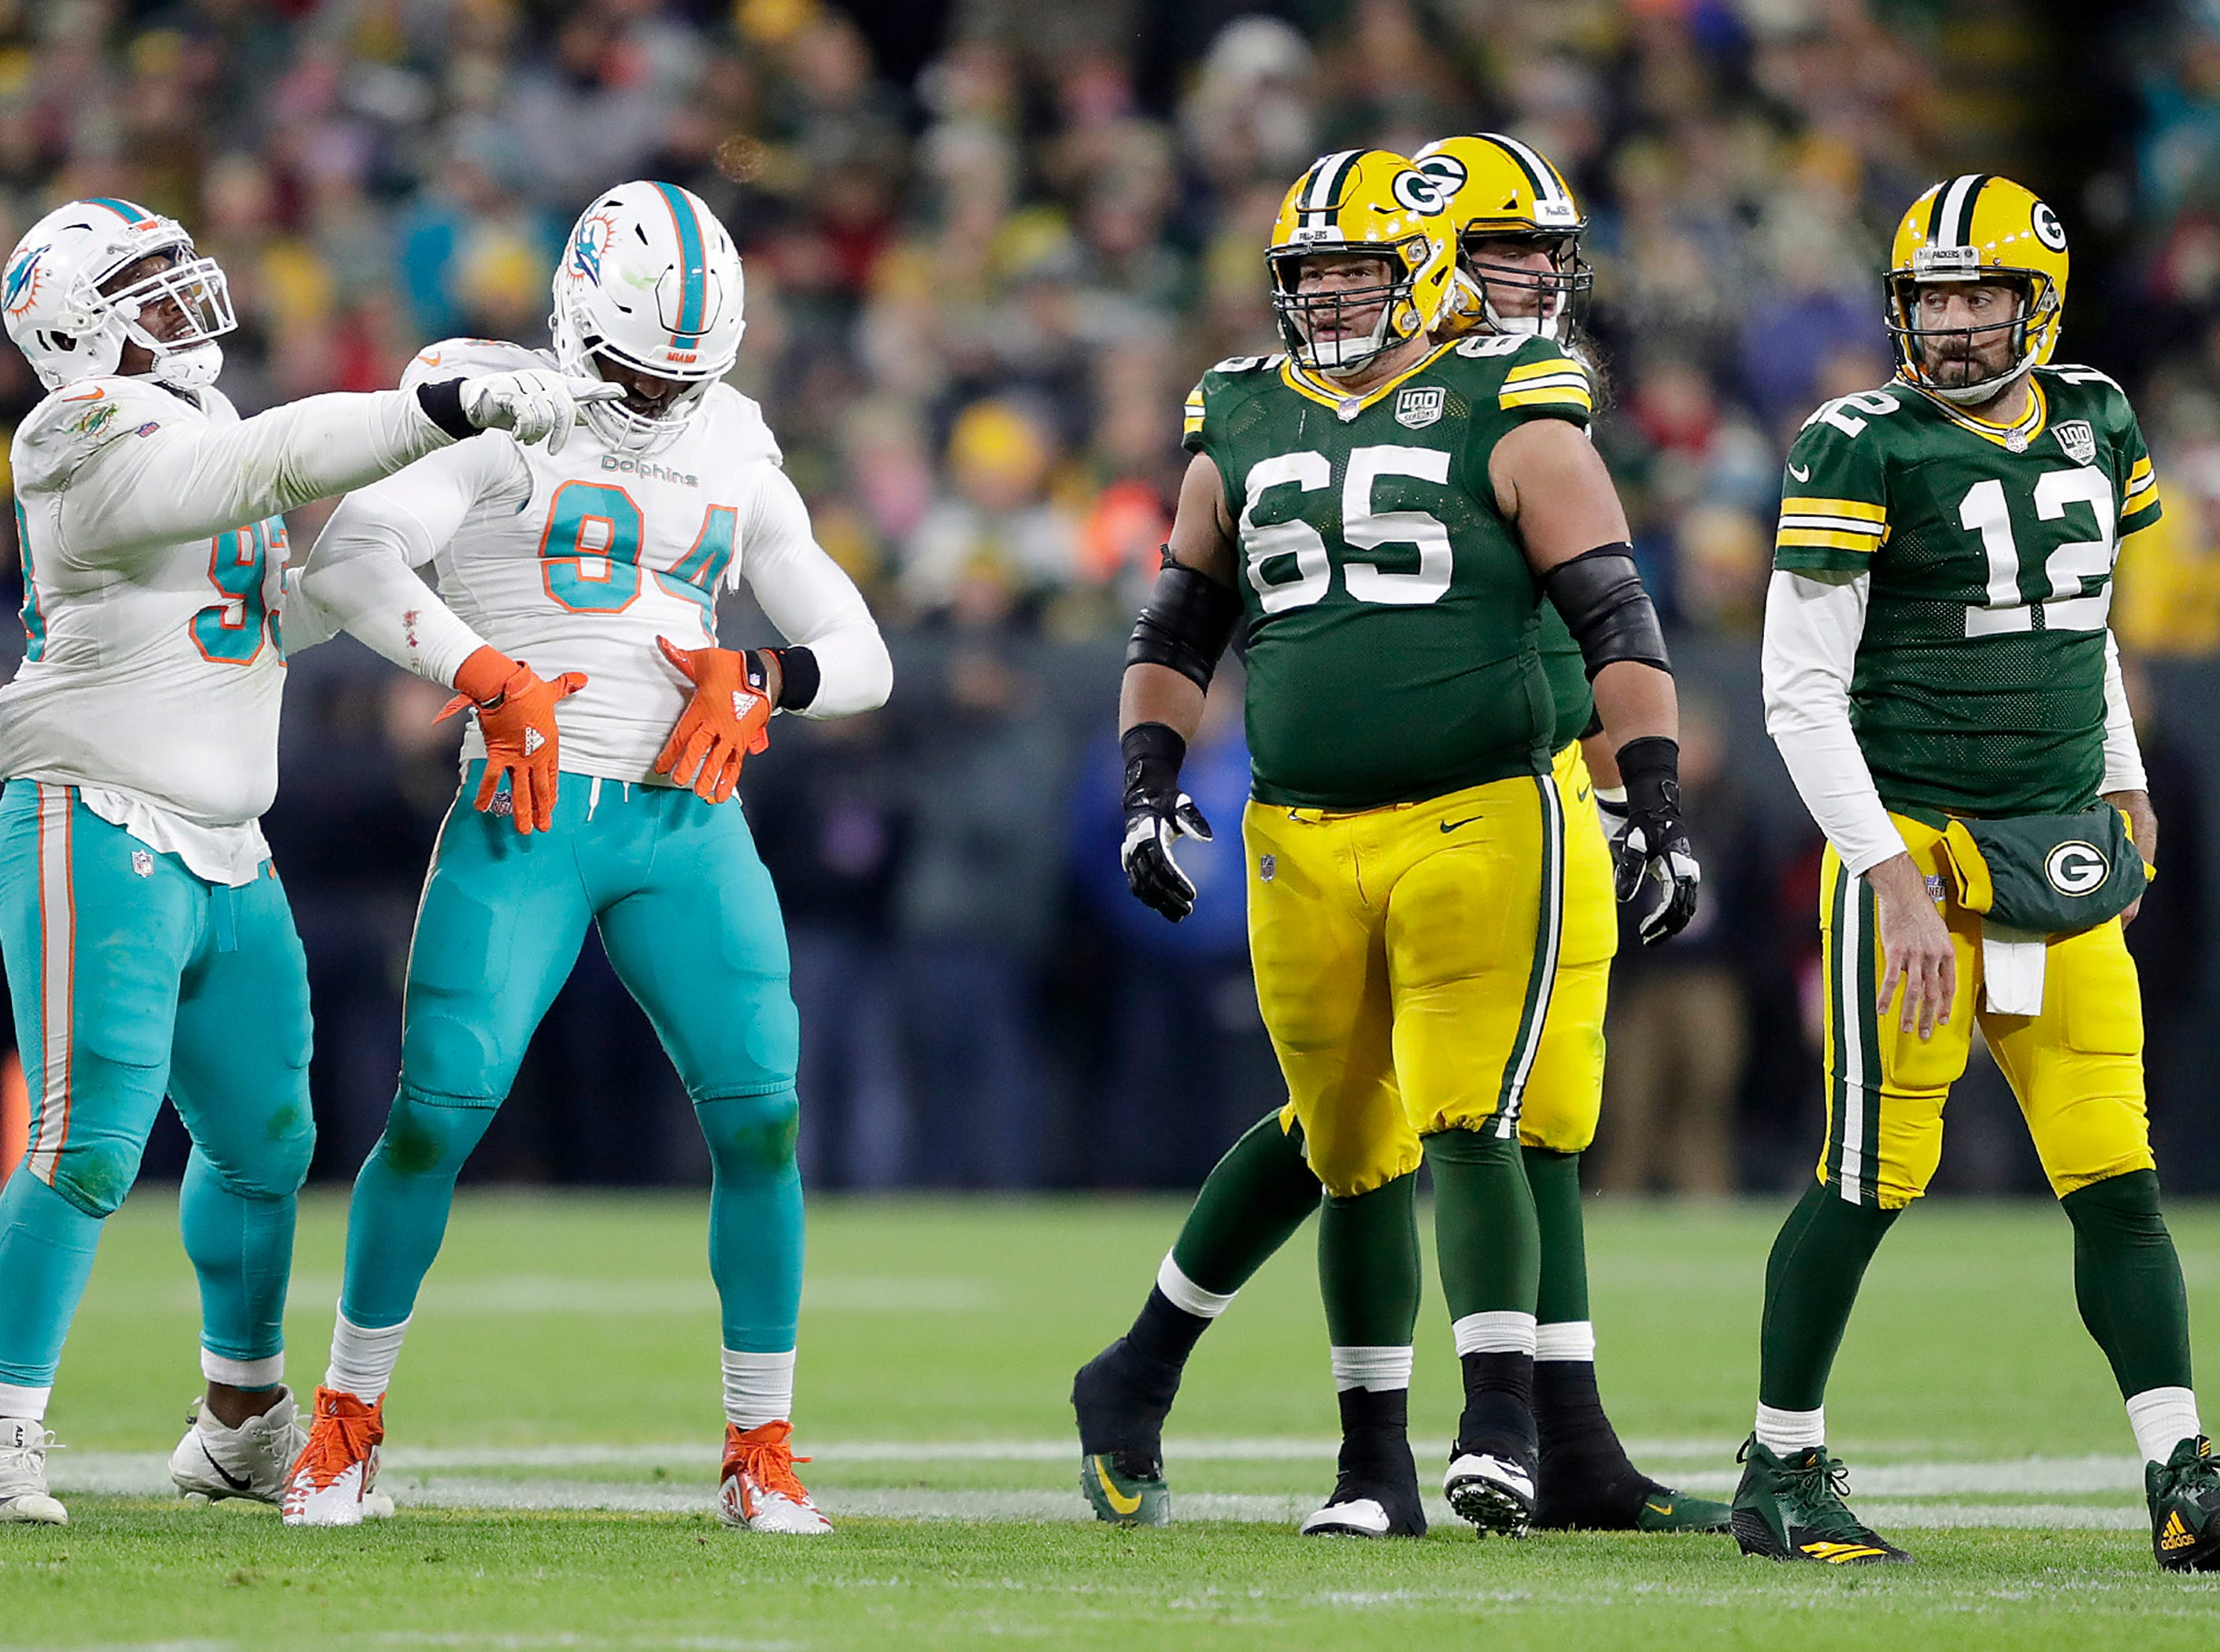 Miami Dolphins defensive end Robert Quinn celebrates after sacking Green Bay Packers quarterback Aaron Rodgers during their football game on Sunday, November 11, 2018, at Lambeau Field in Green Bay, Wis.